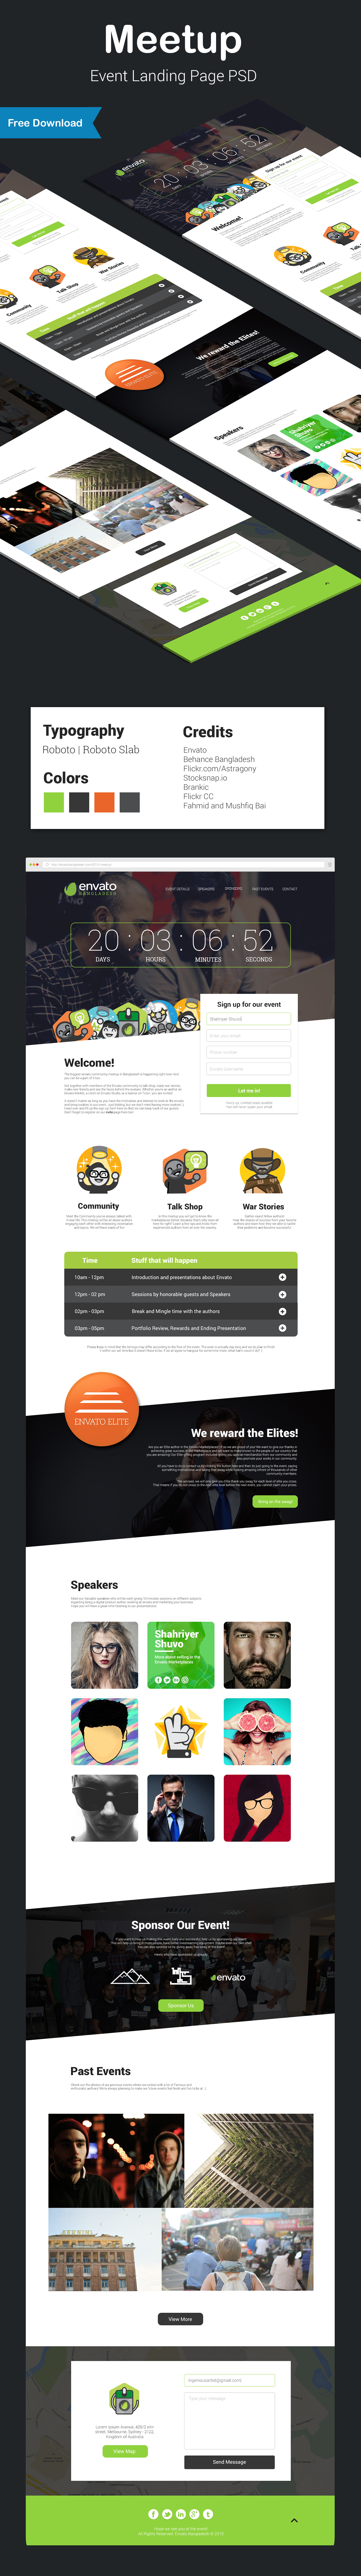 envato meetup community Event landing page user Interface Web design Experience flat icons marketing   Meet